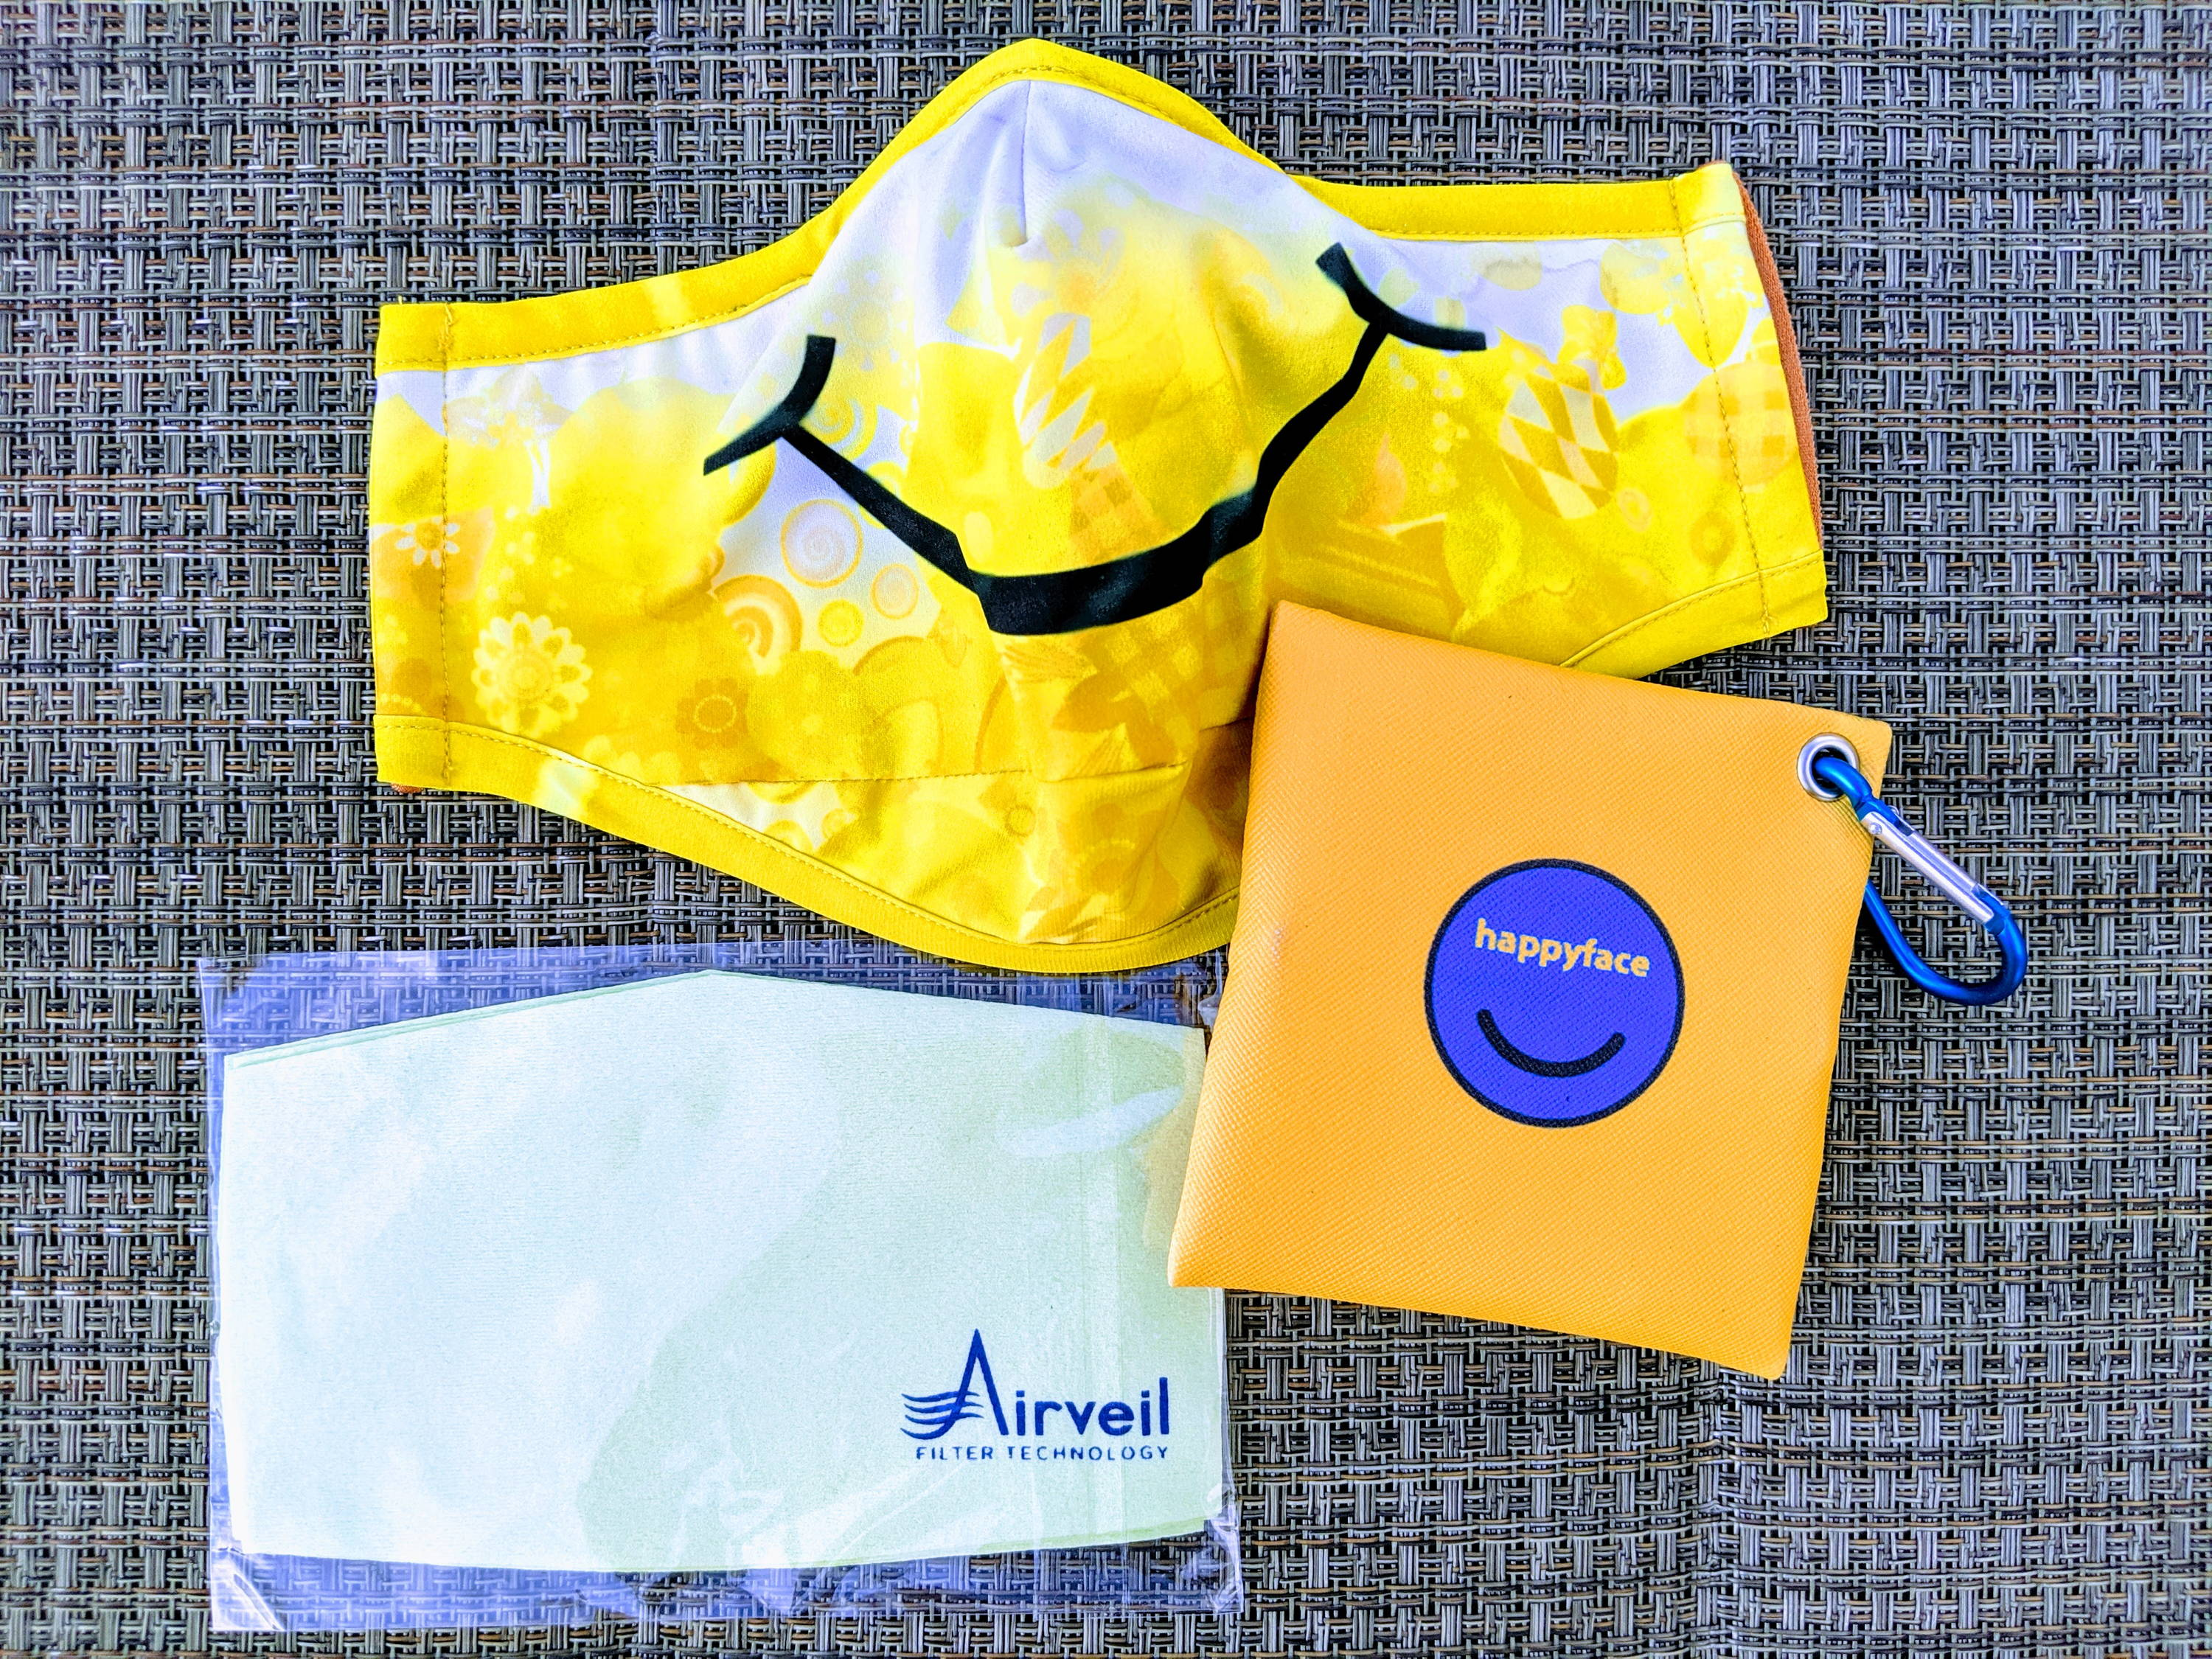 yellow smiley face Happyface mask with zippered carrying pouch and Airveil nanofiber filter inserts